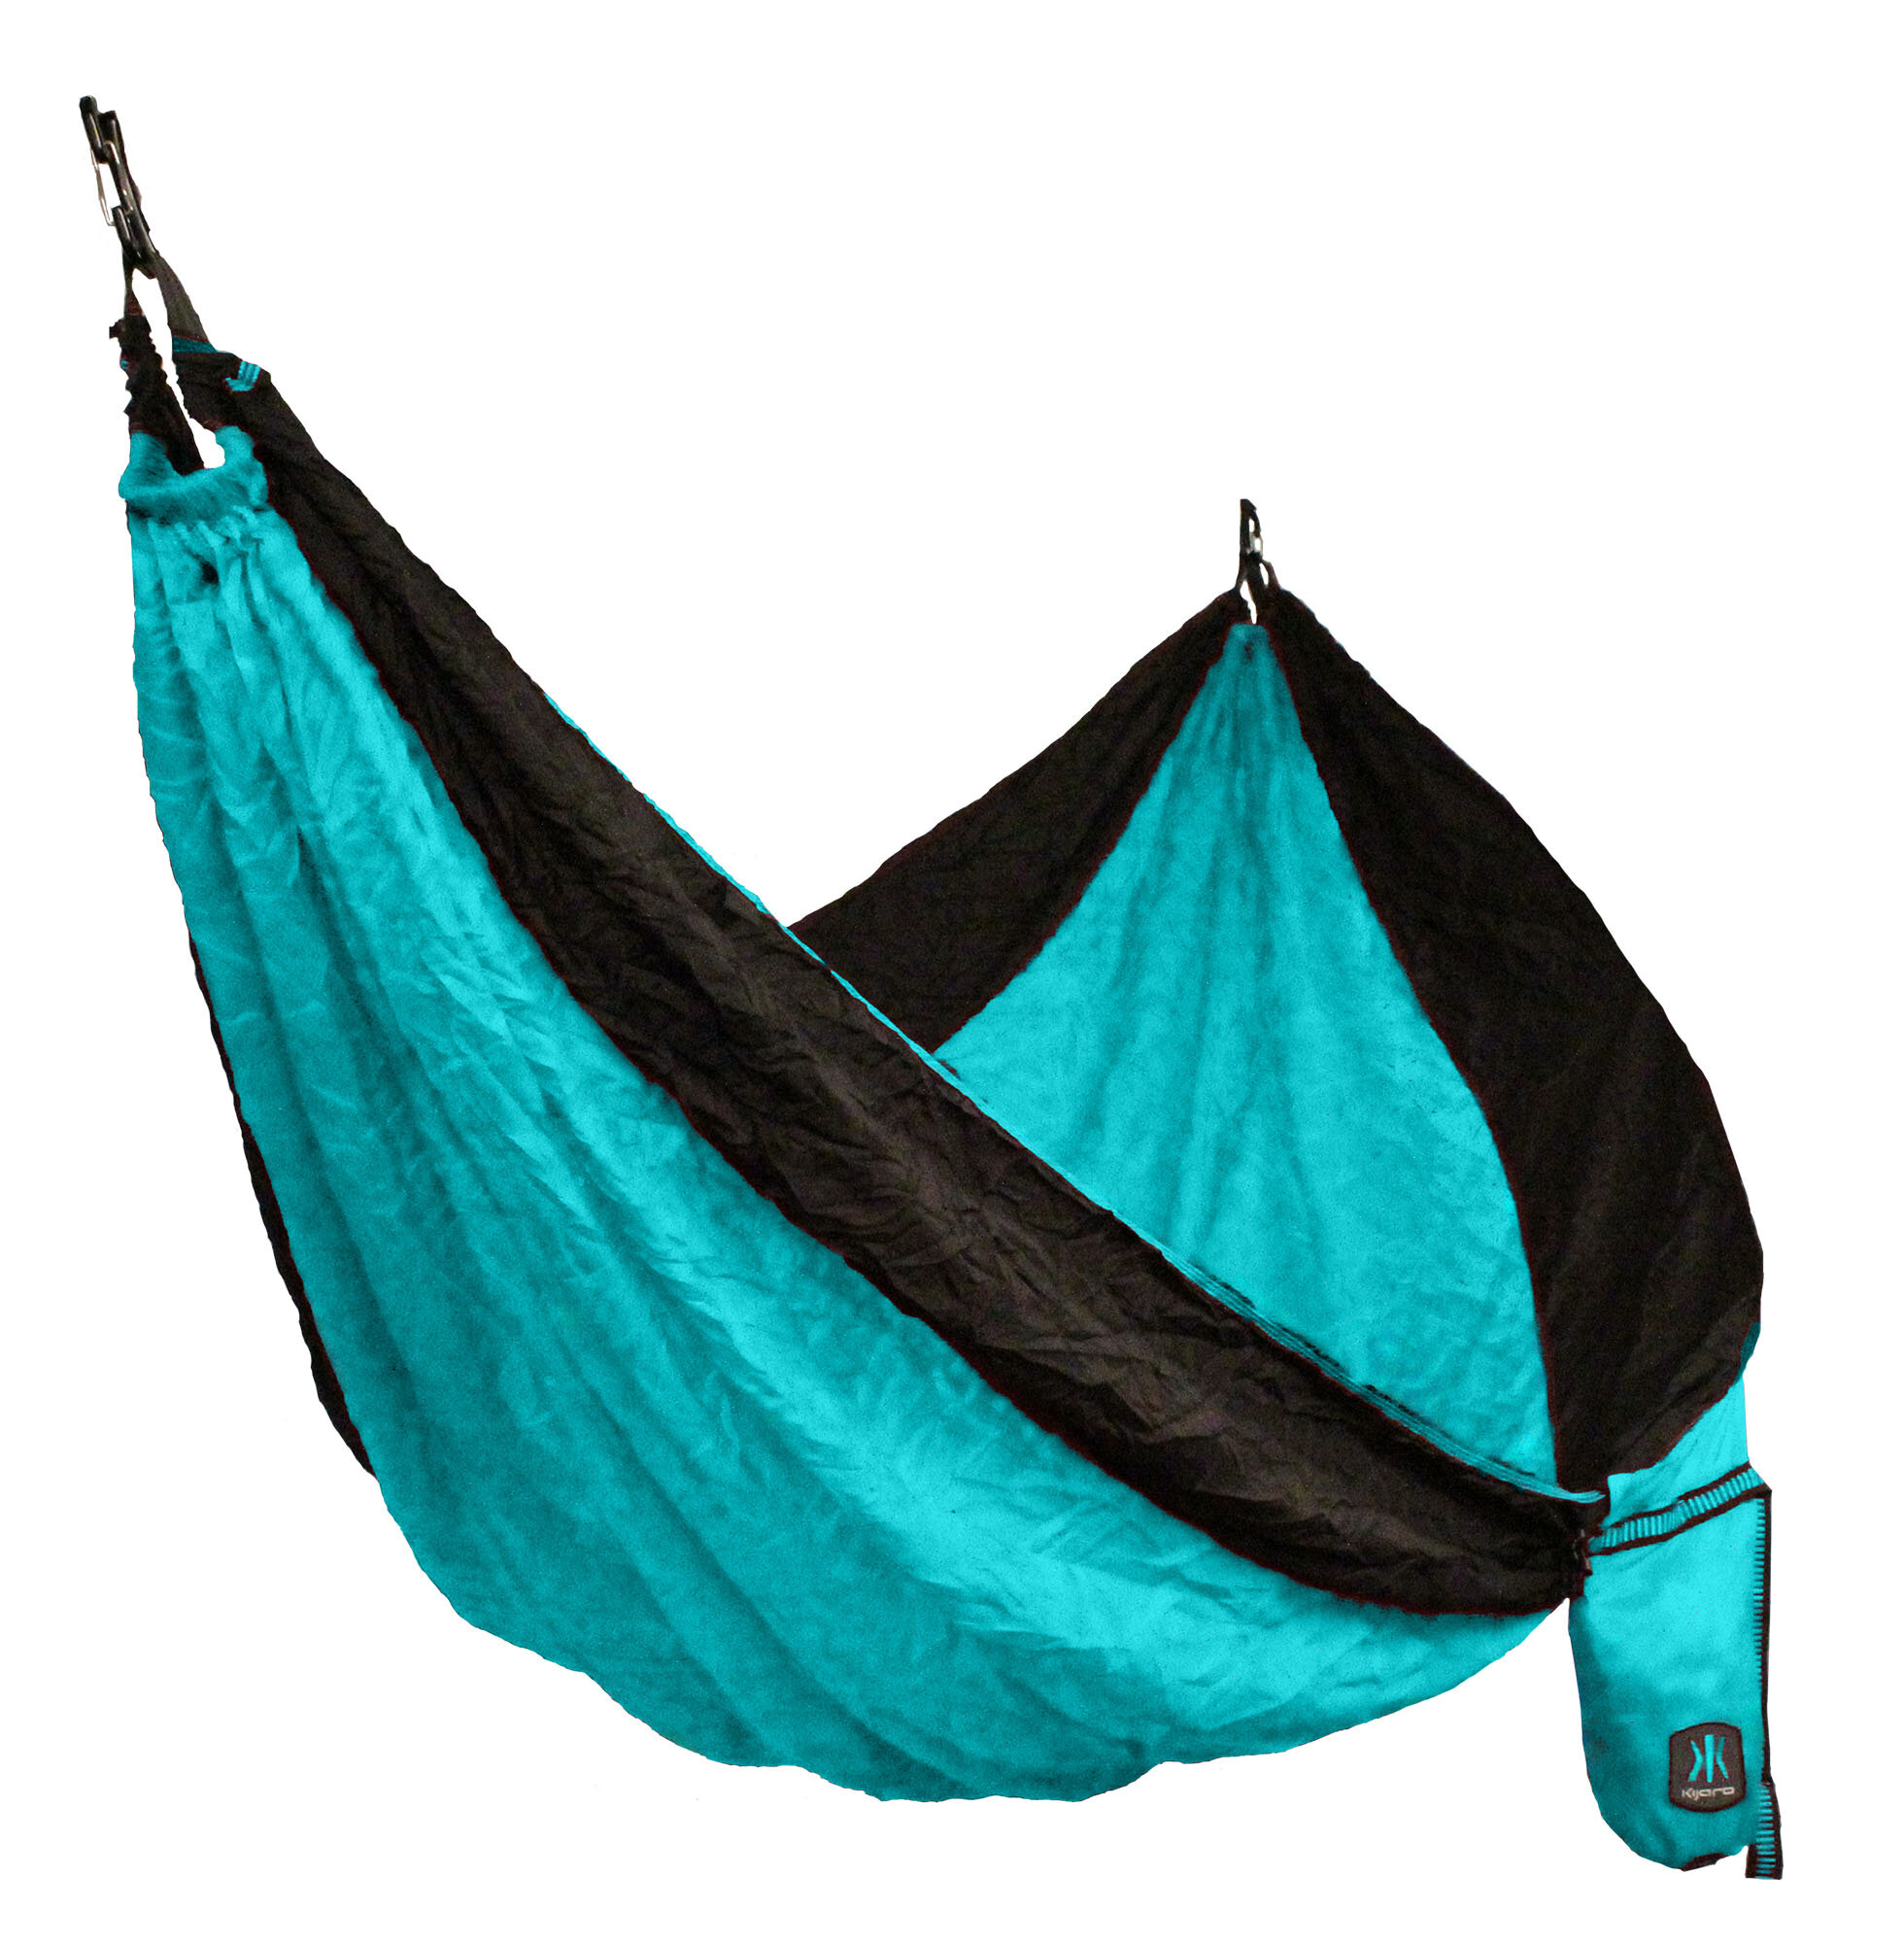 Wonderful Kijaro Single Camping Hammock | Wayfair